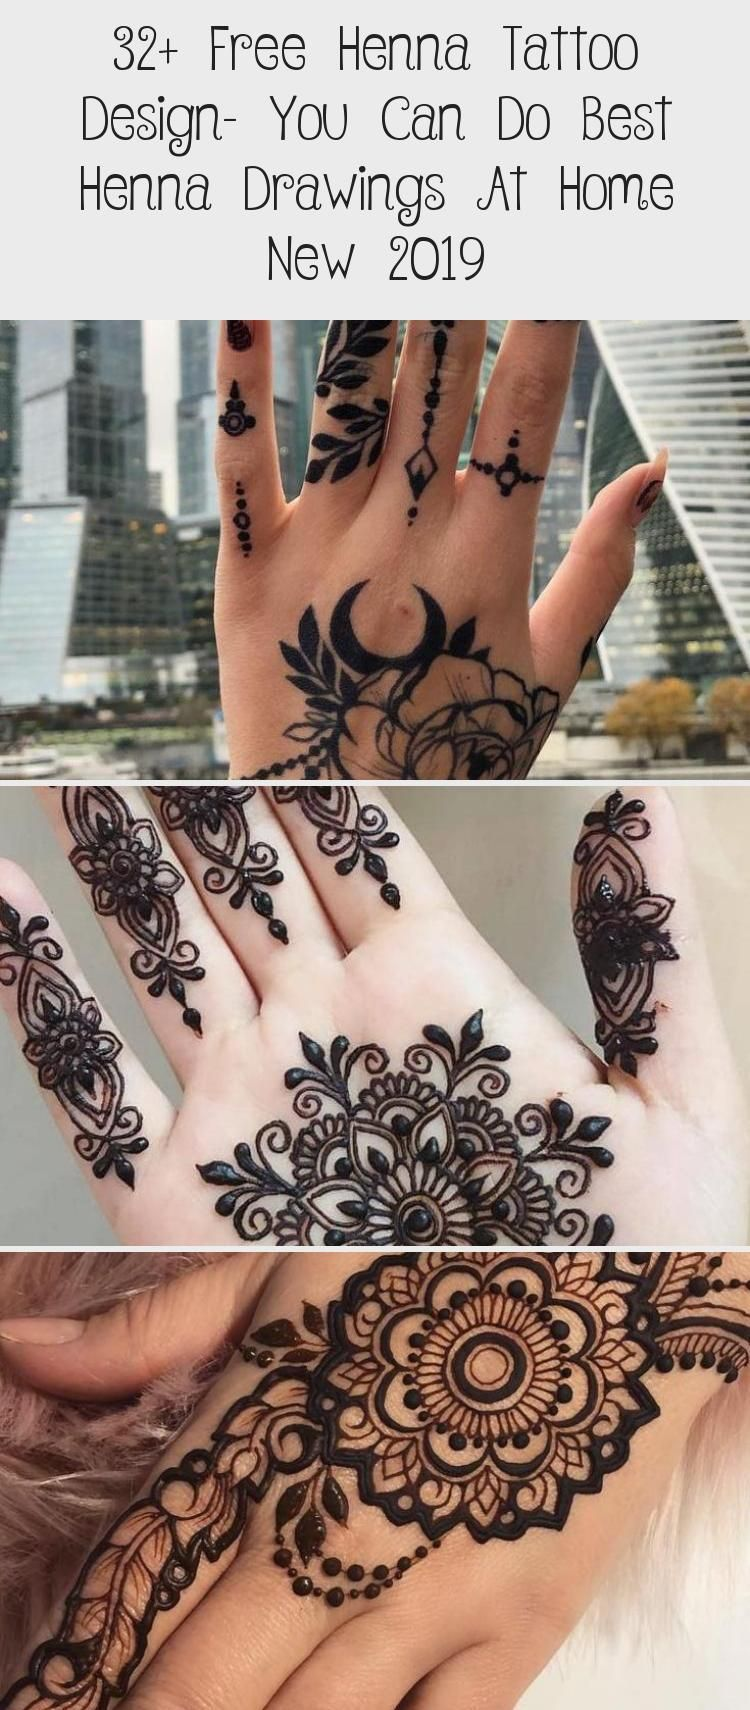 32 Free Henna Tattoo Design You Can Do Best Henna Drawings At Home New 2019 Tattoos And Body Art In 2020 Henna Tattoo Designs Henna Drawings Henna Tattoo